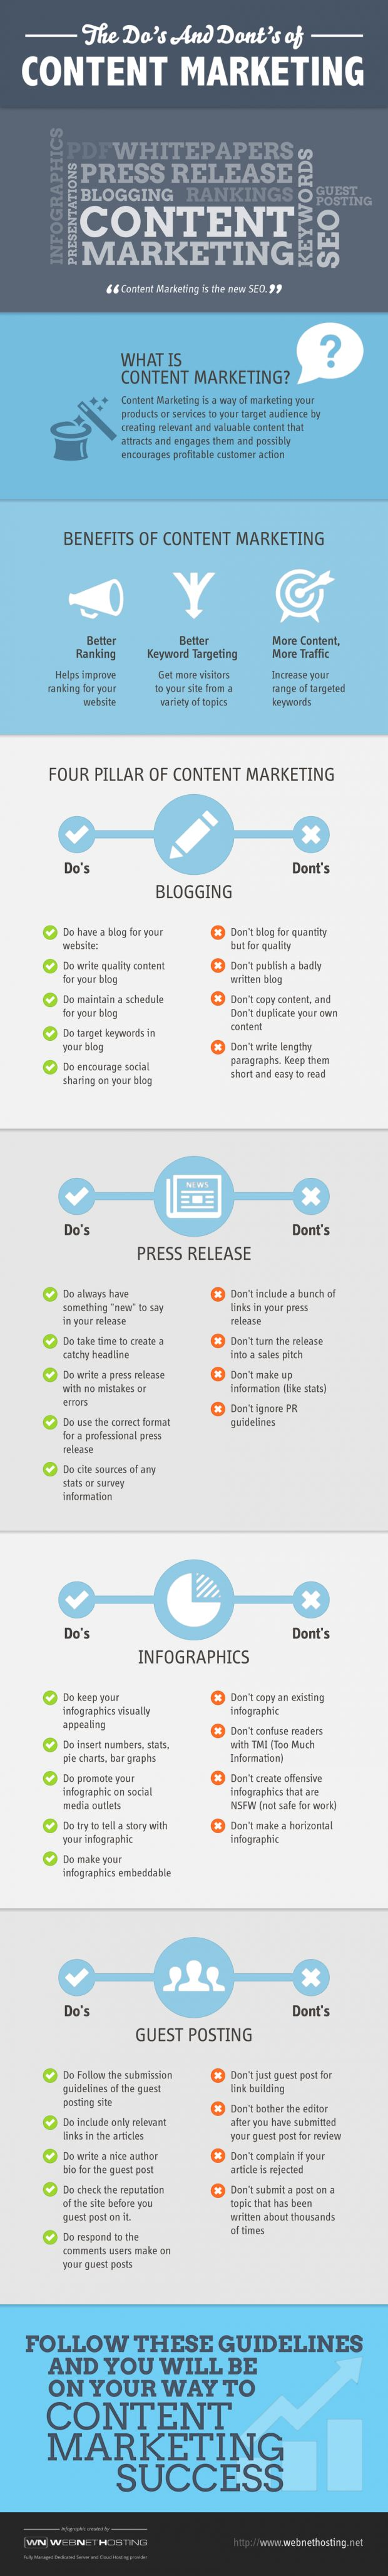 The Do's and Dont's of Content Marketing